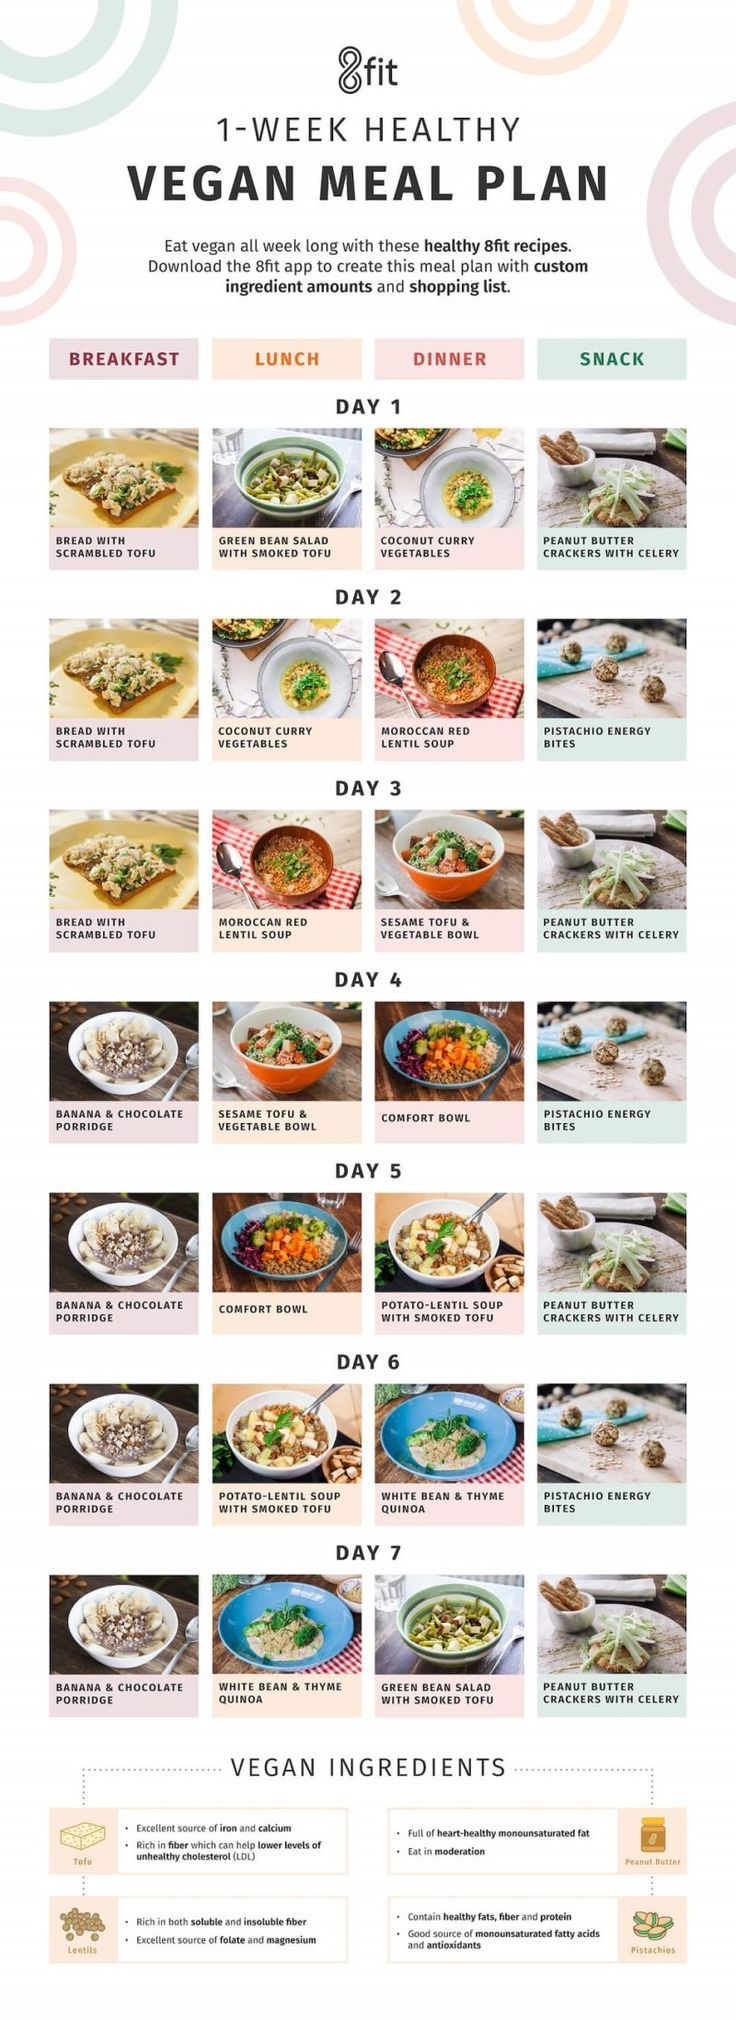 7 days 1weekveganmealplanfullvegan meal plan